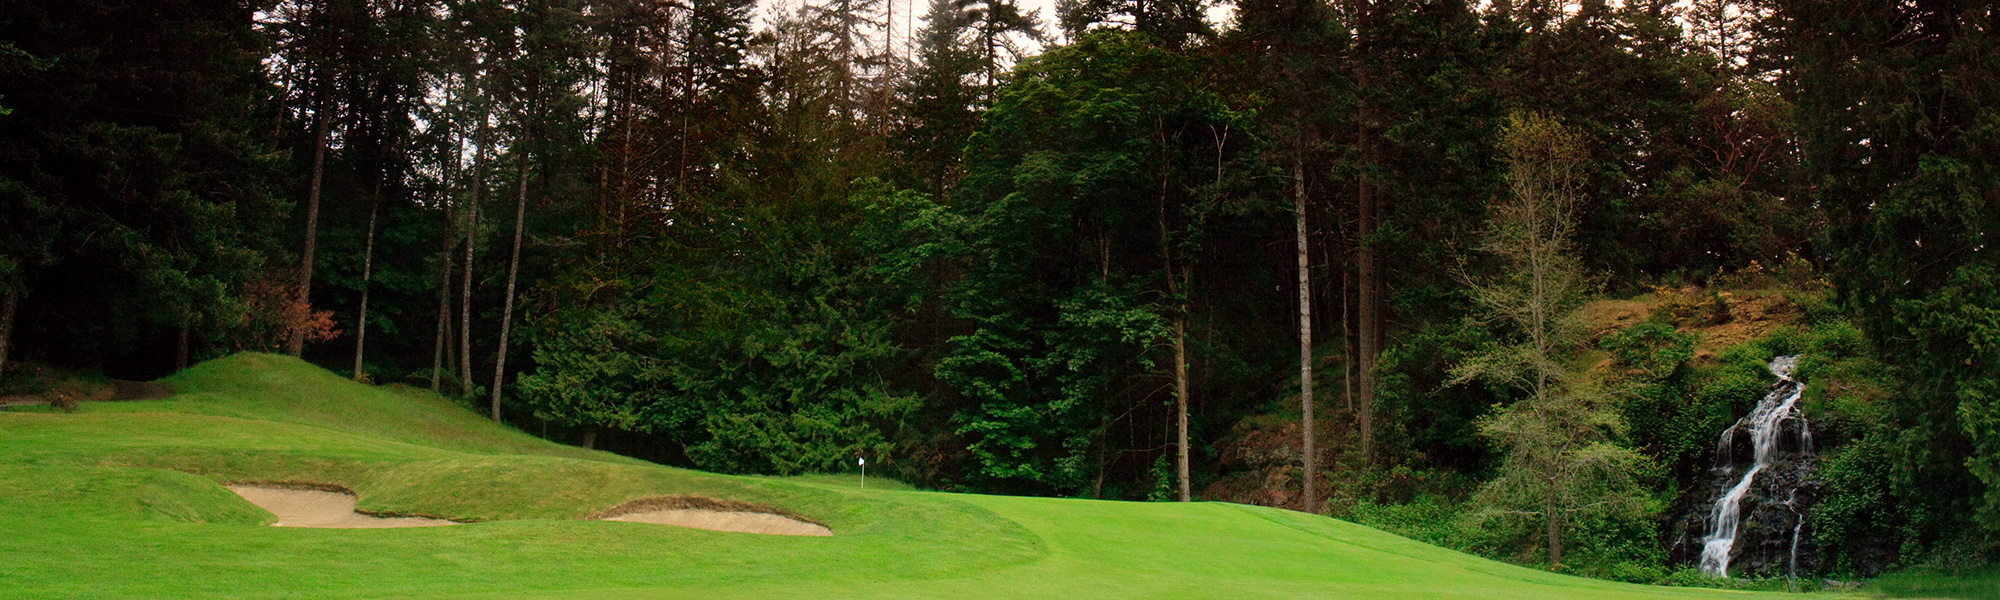 Olympic View Golf Course in Victoria BC